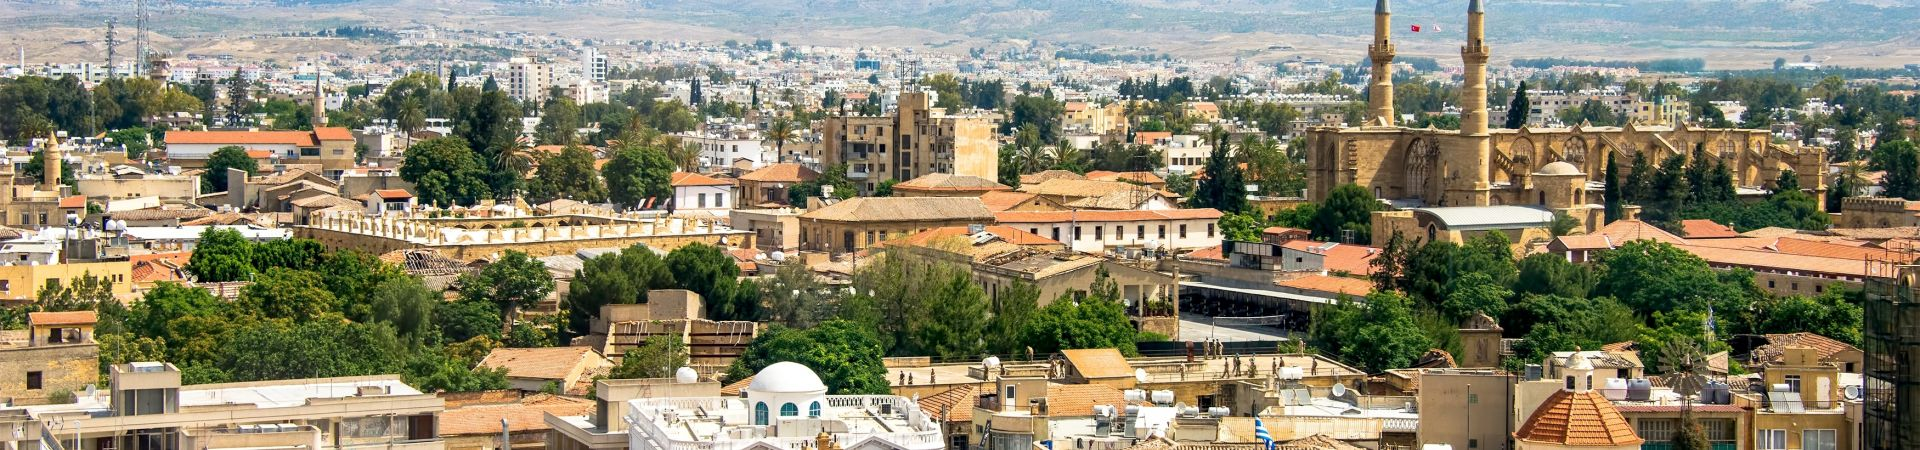 Limassol to Nicosia taxi ride